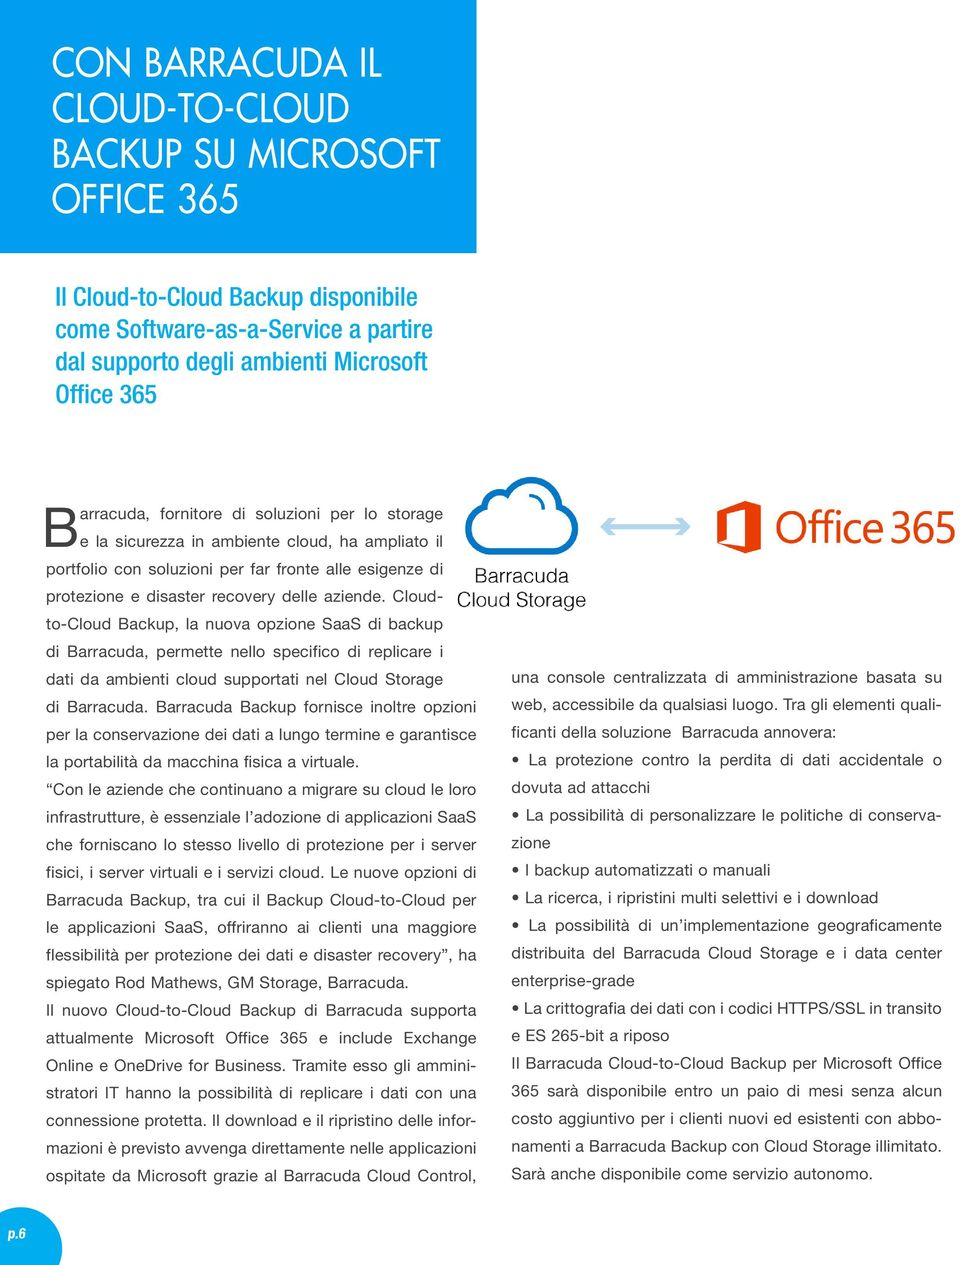 Cloudto-Cloud Backup, la nuova opzione SaaS di backup di Barracuda, permette nello specifico di replicare i dati da ambienti cloud supportati nel Cloud Storage di Barracuda.